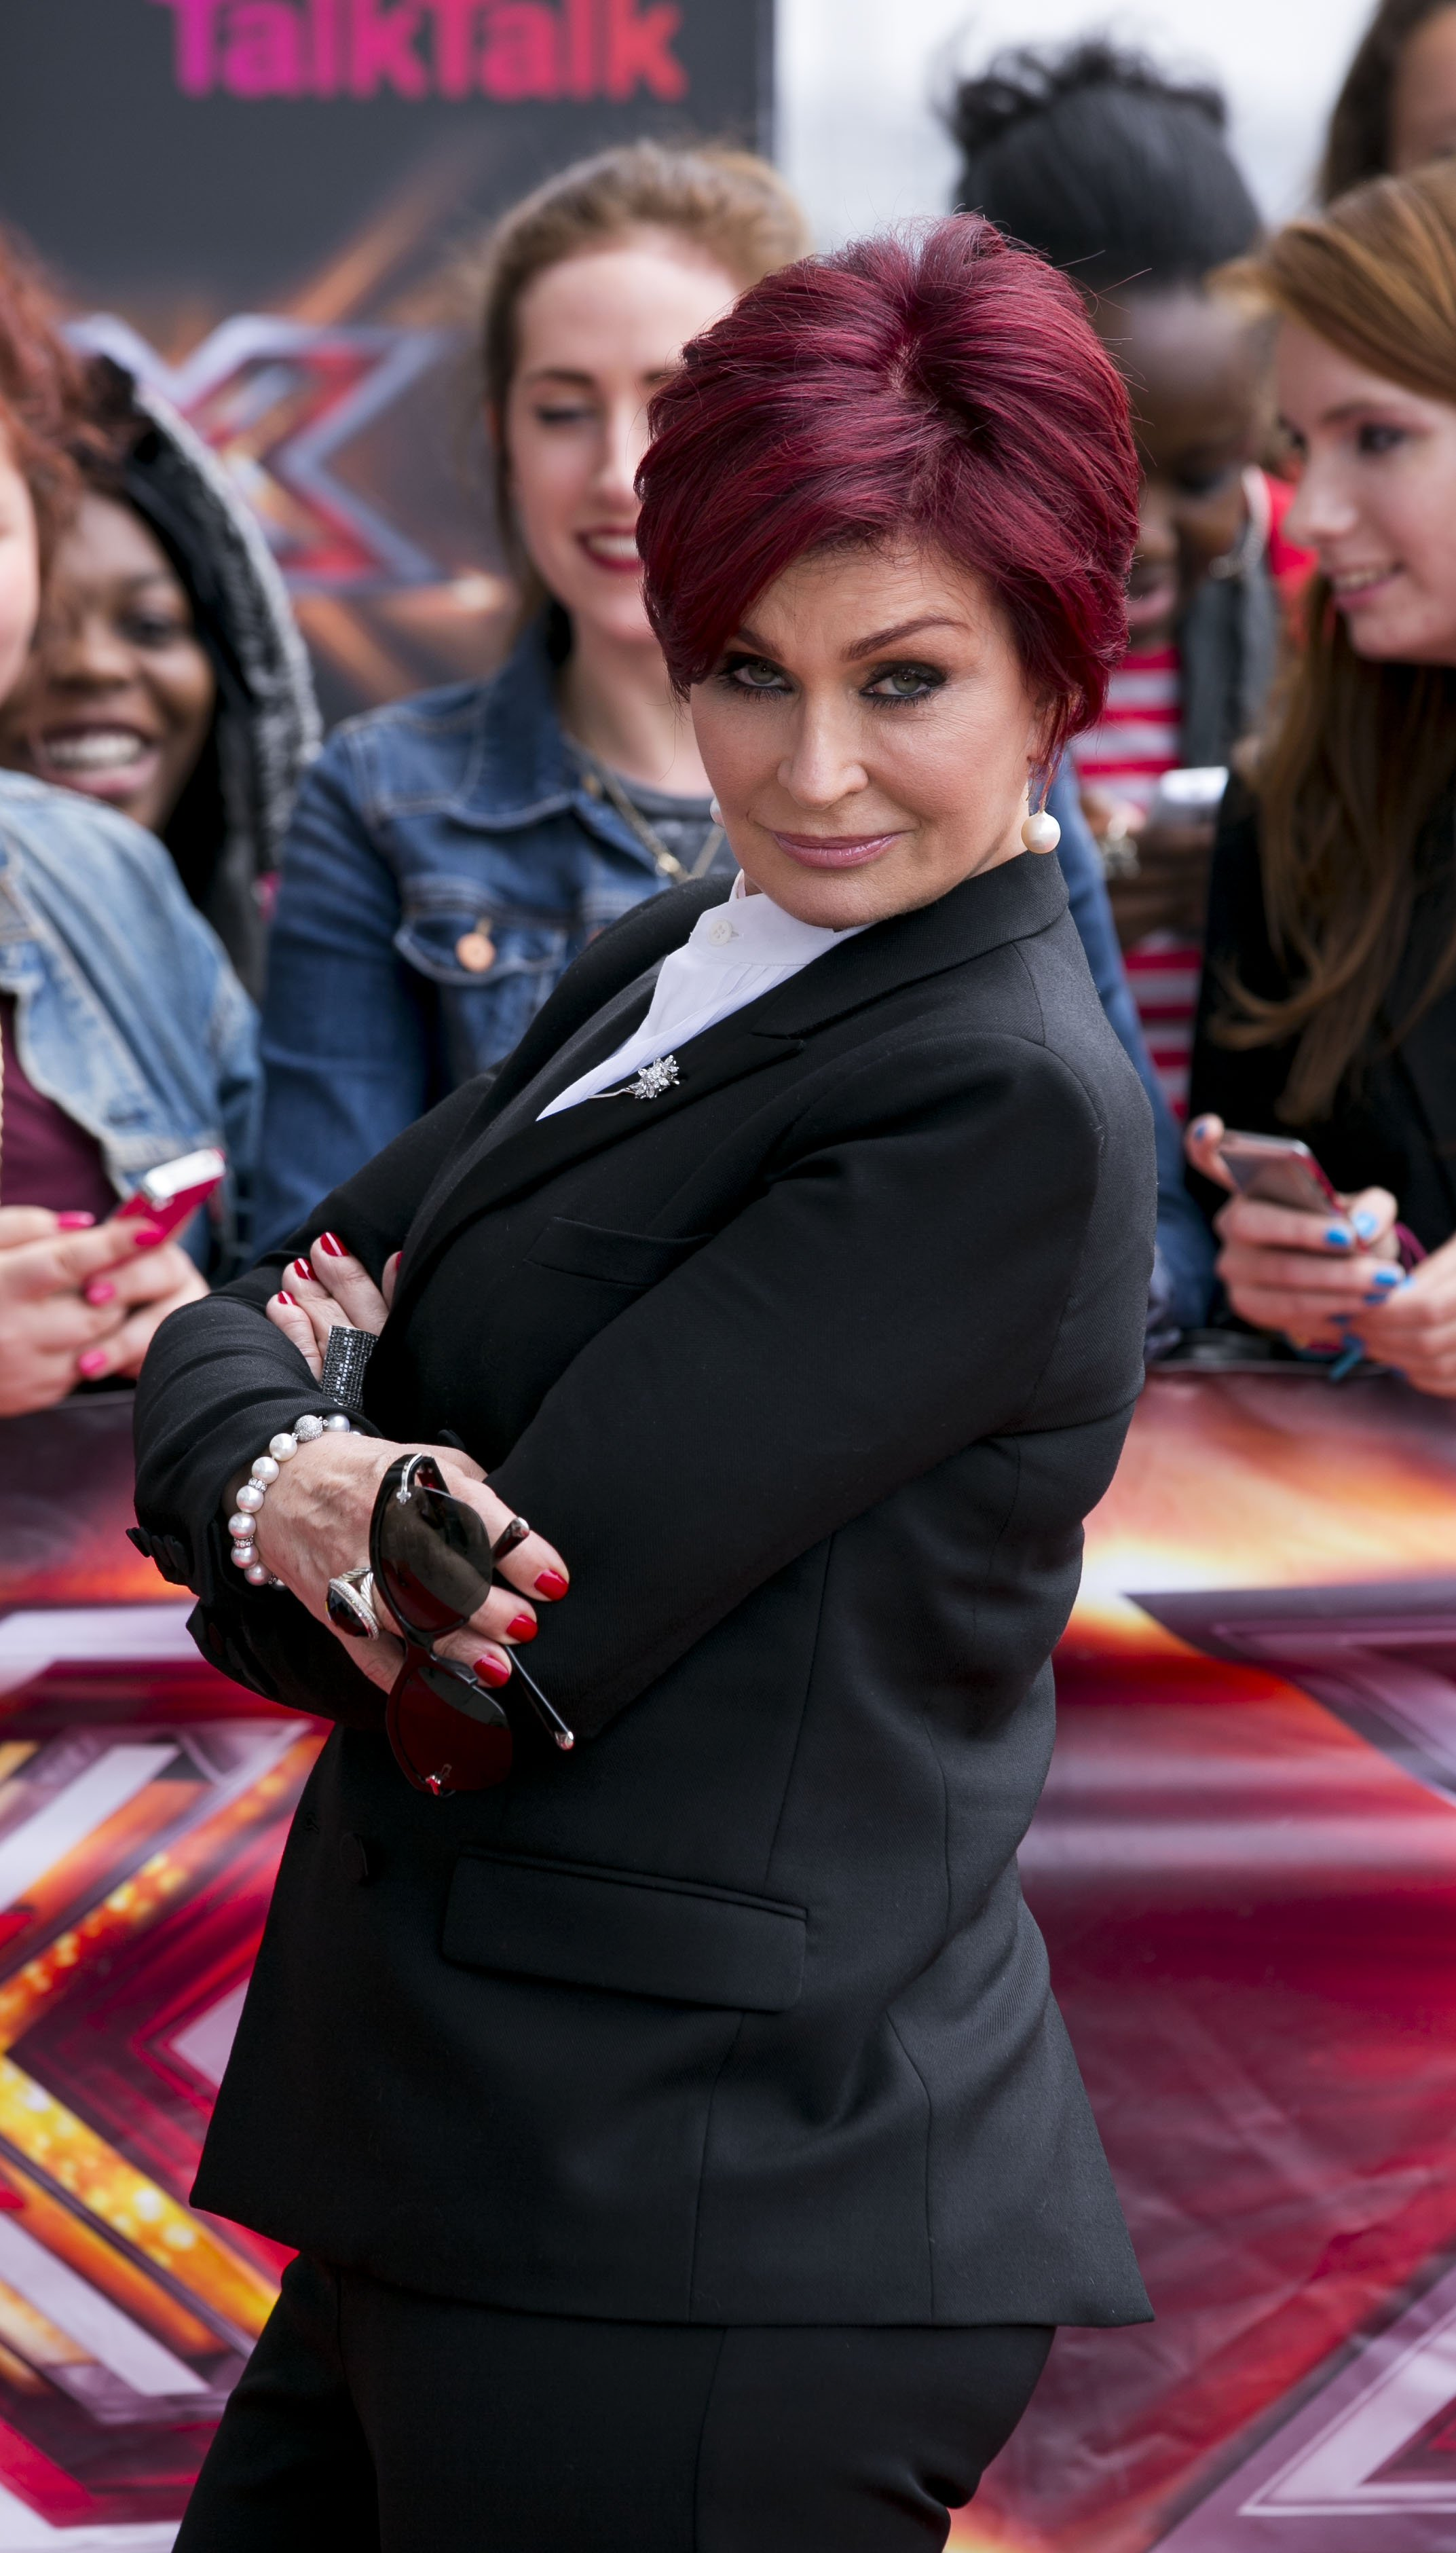 Sharon Osbourne at the London auditions of 'The X Factor' at ExCel on June 19, 2013. | Photo: GettyImages